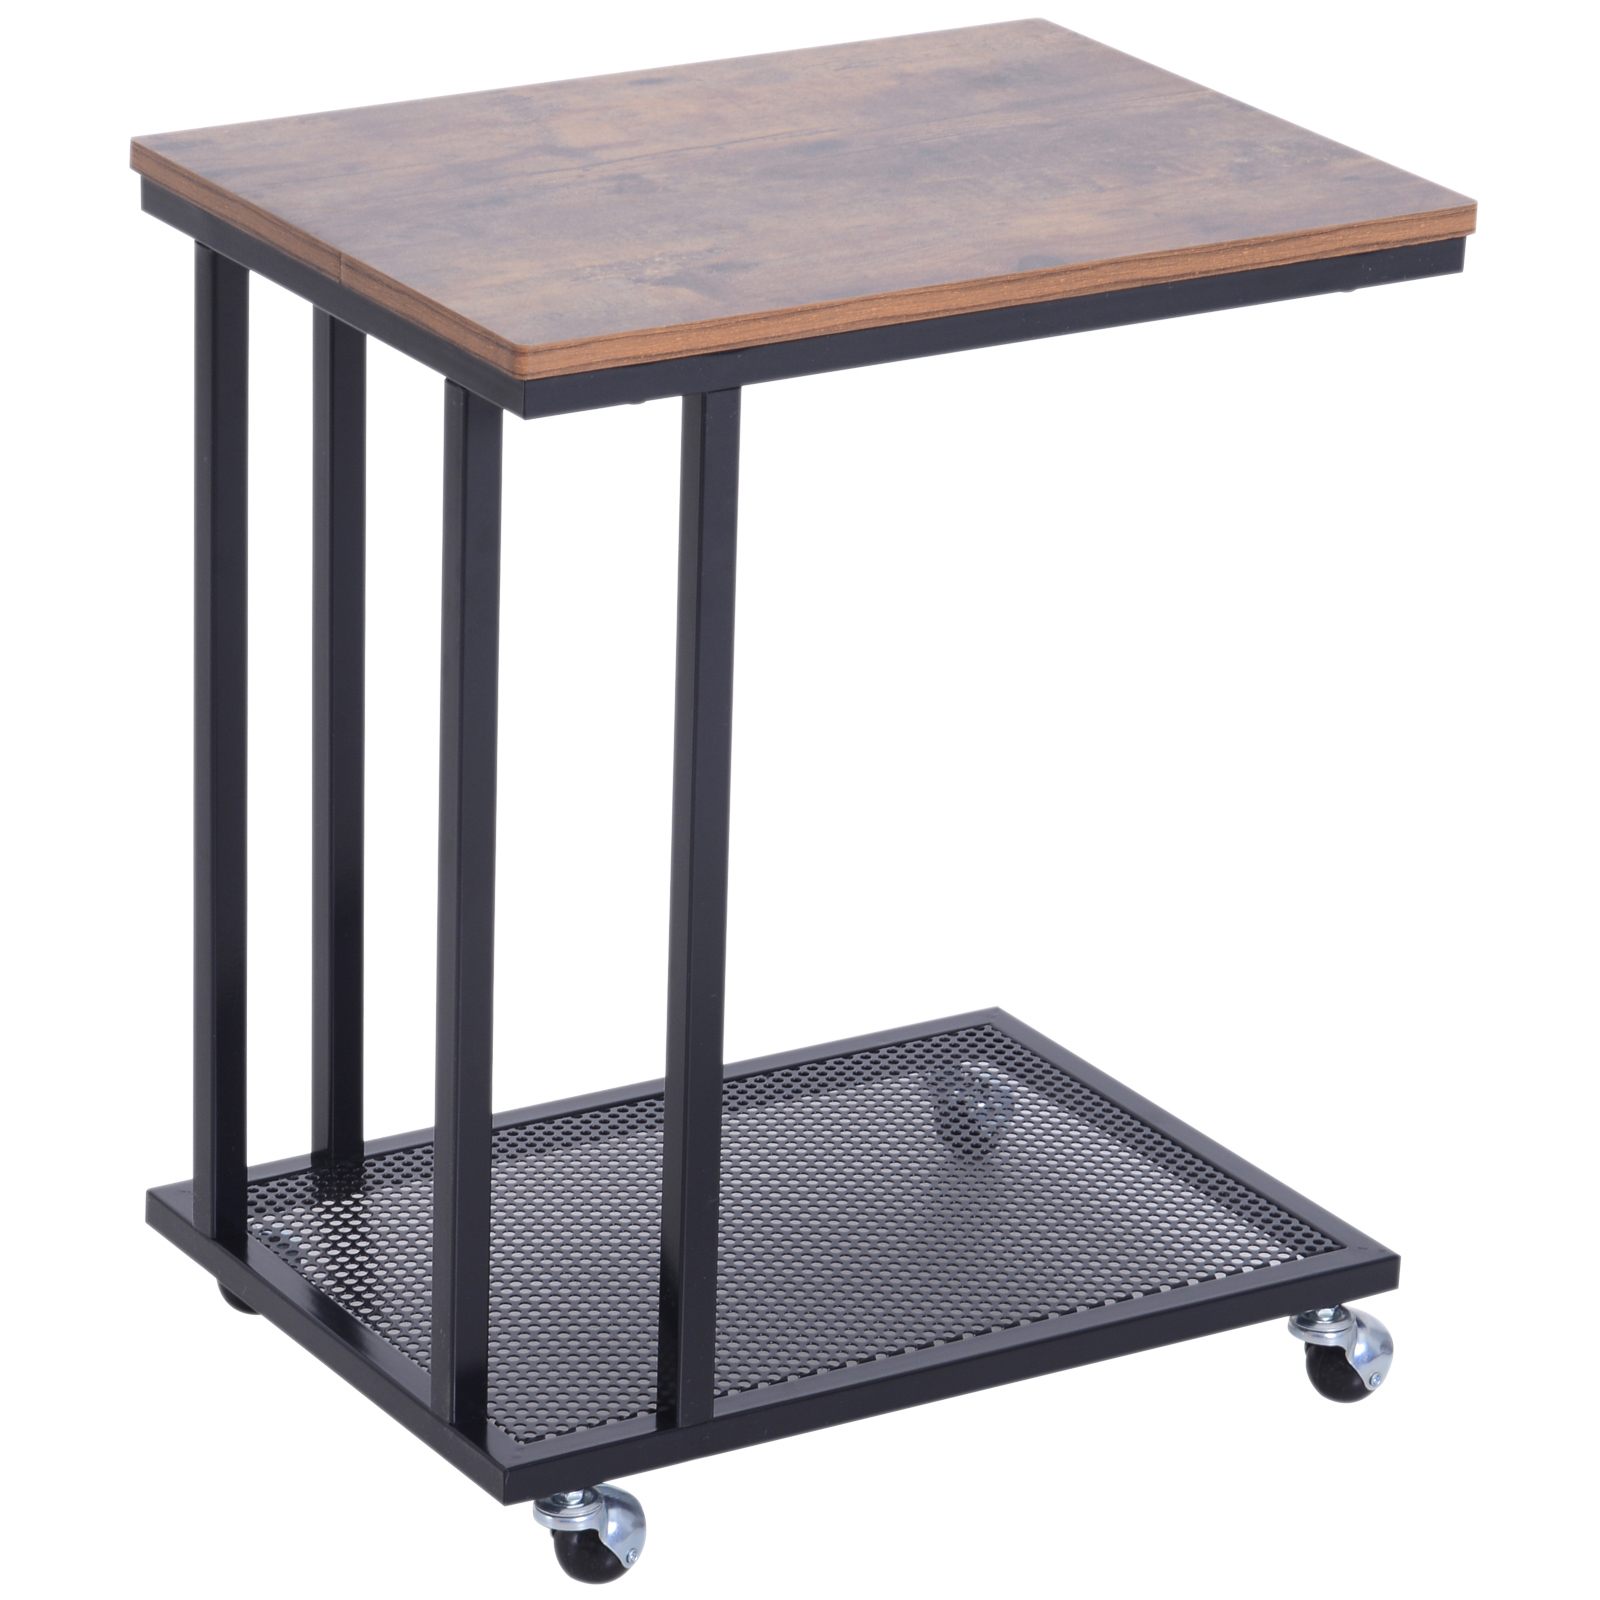 Table basse table d'appoint Vintage style industriel